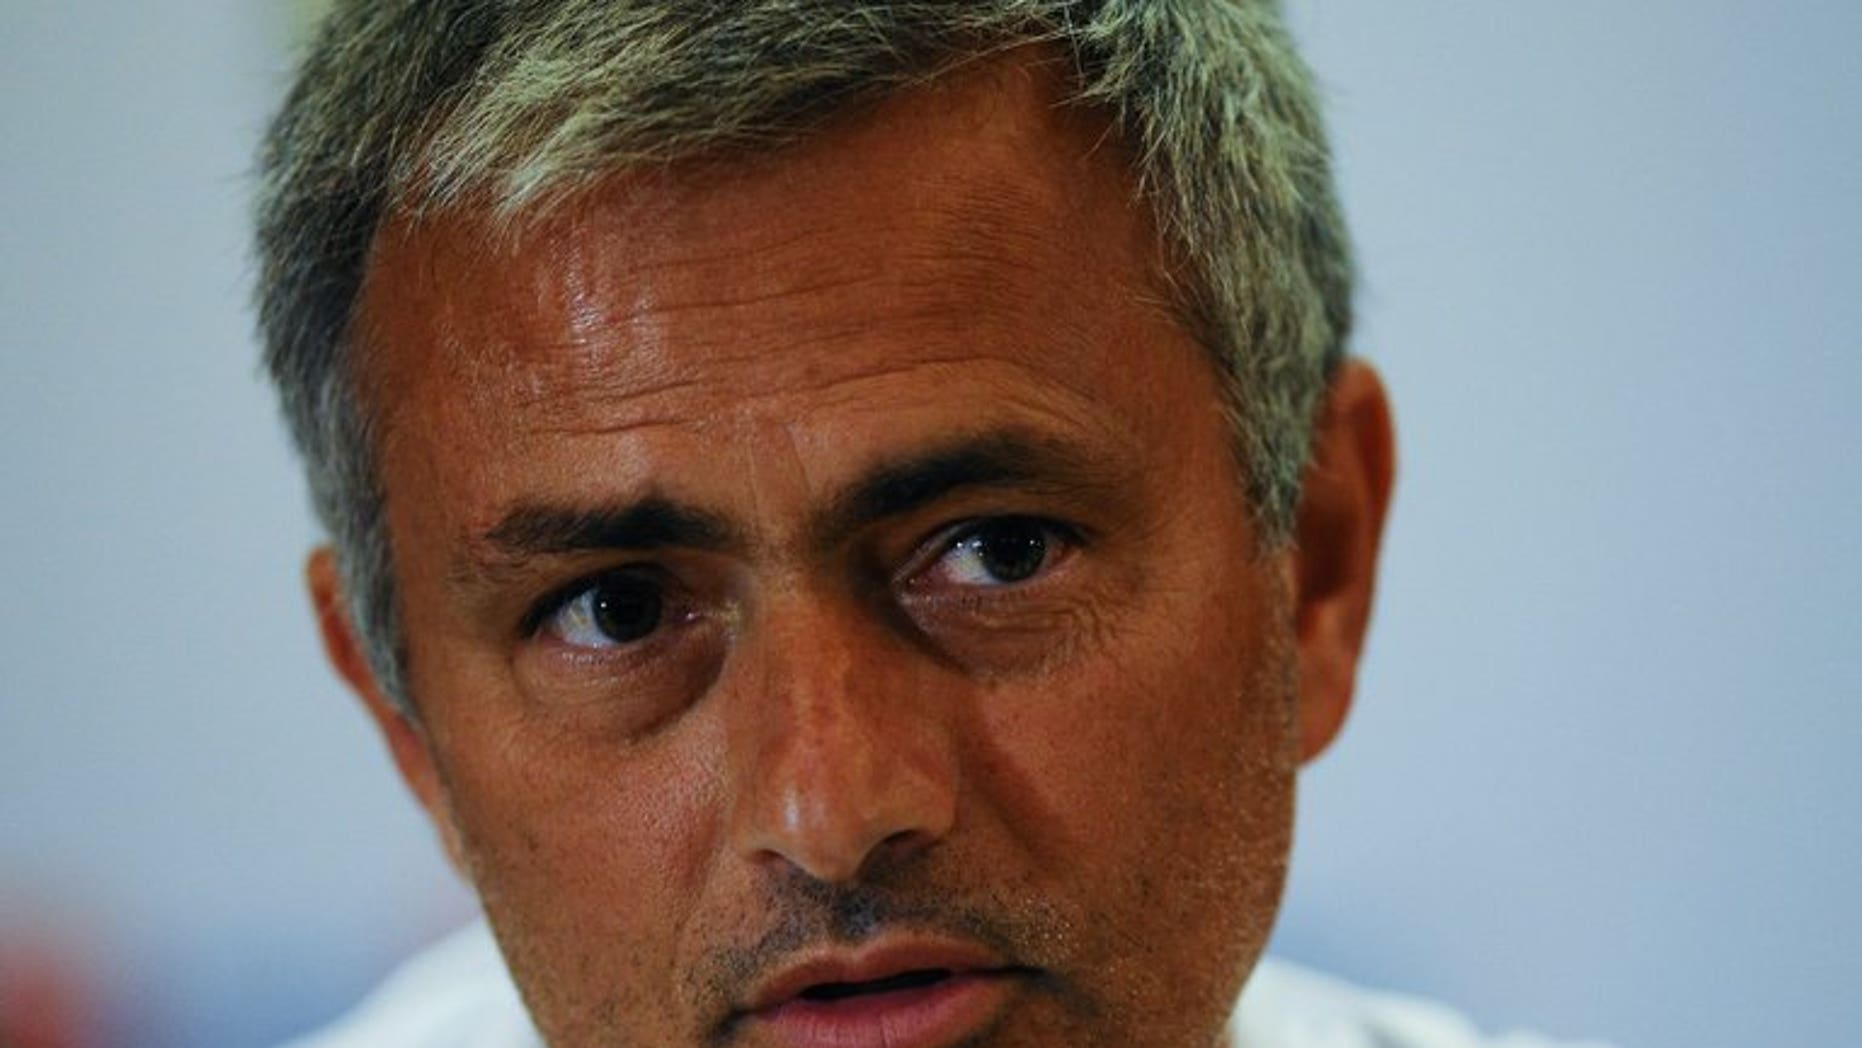 Chelsea manager Jose Mourinho speaks during a press conference in Kuala Lumpur on July 18, 2013. Chelsea boss Jose Mourinho has claimed he was close to taking charge of England in 2007 before realising he would be bored by the low-key nature of international management.